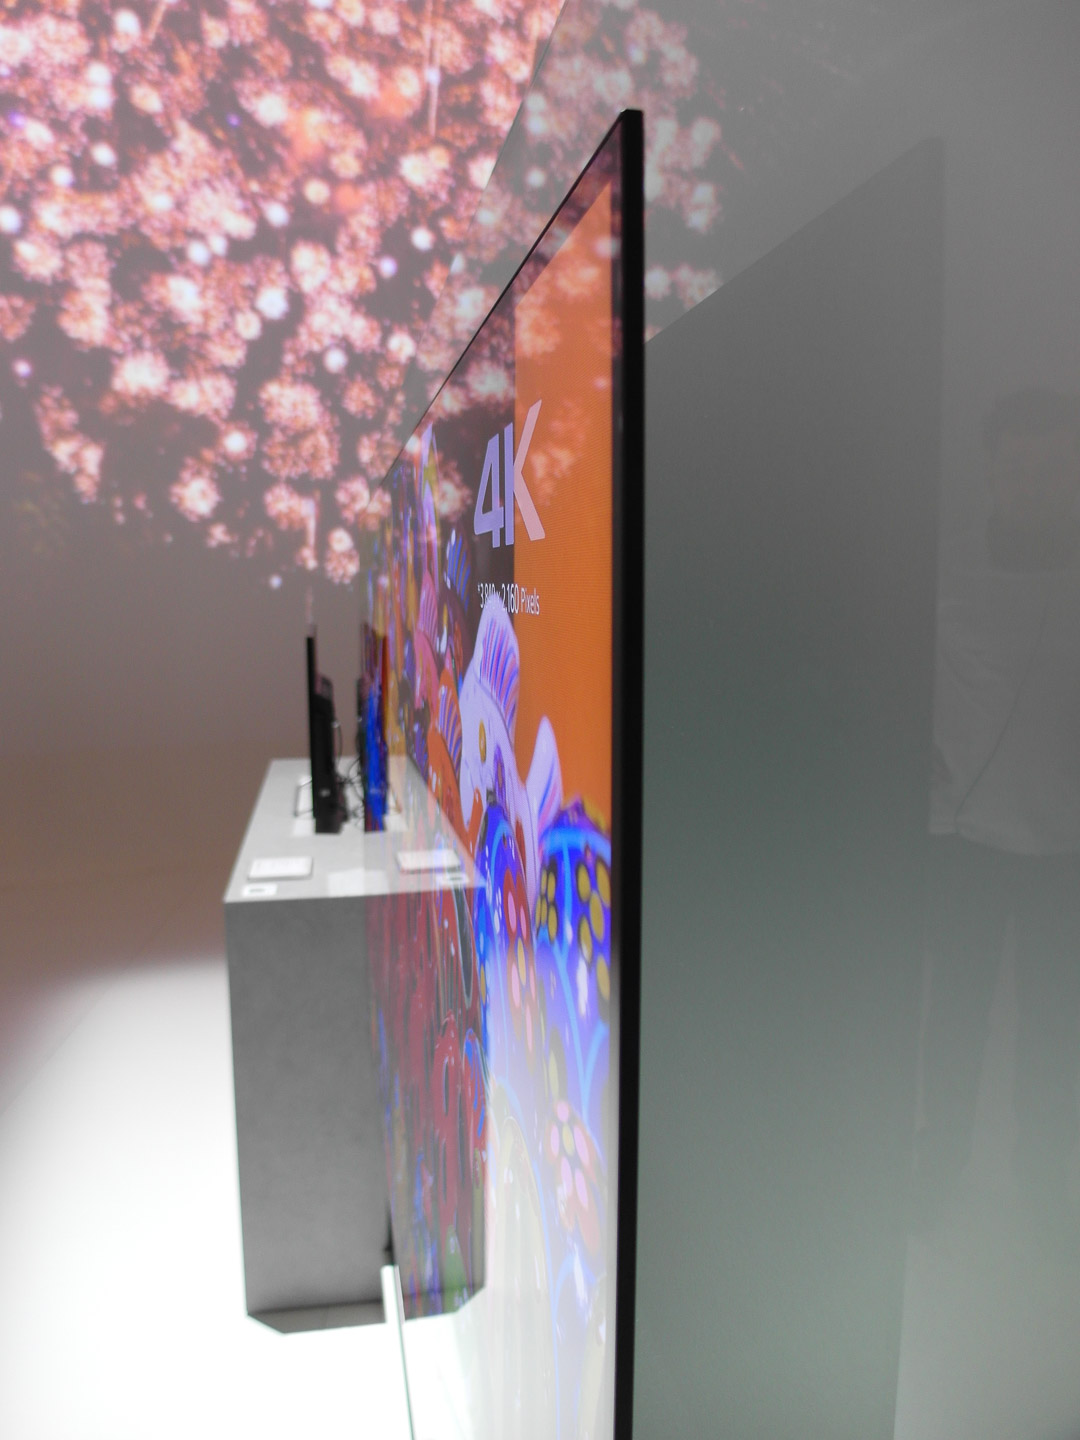 <h1>Sony 4K Ultra HD TV With Android TV</h1> <h2>IFA 2015 SmartHomeConsult Report</h2>